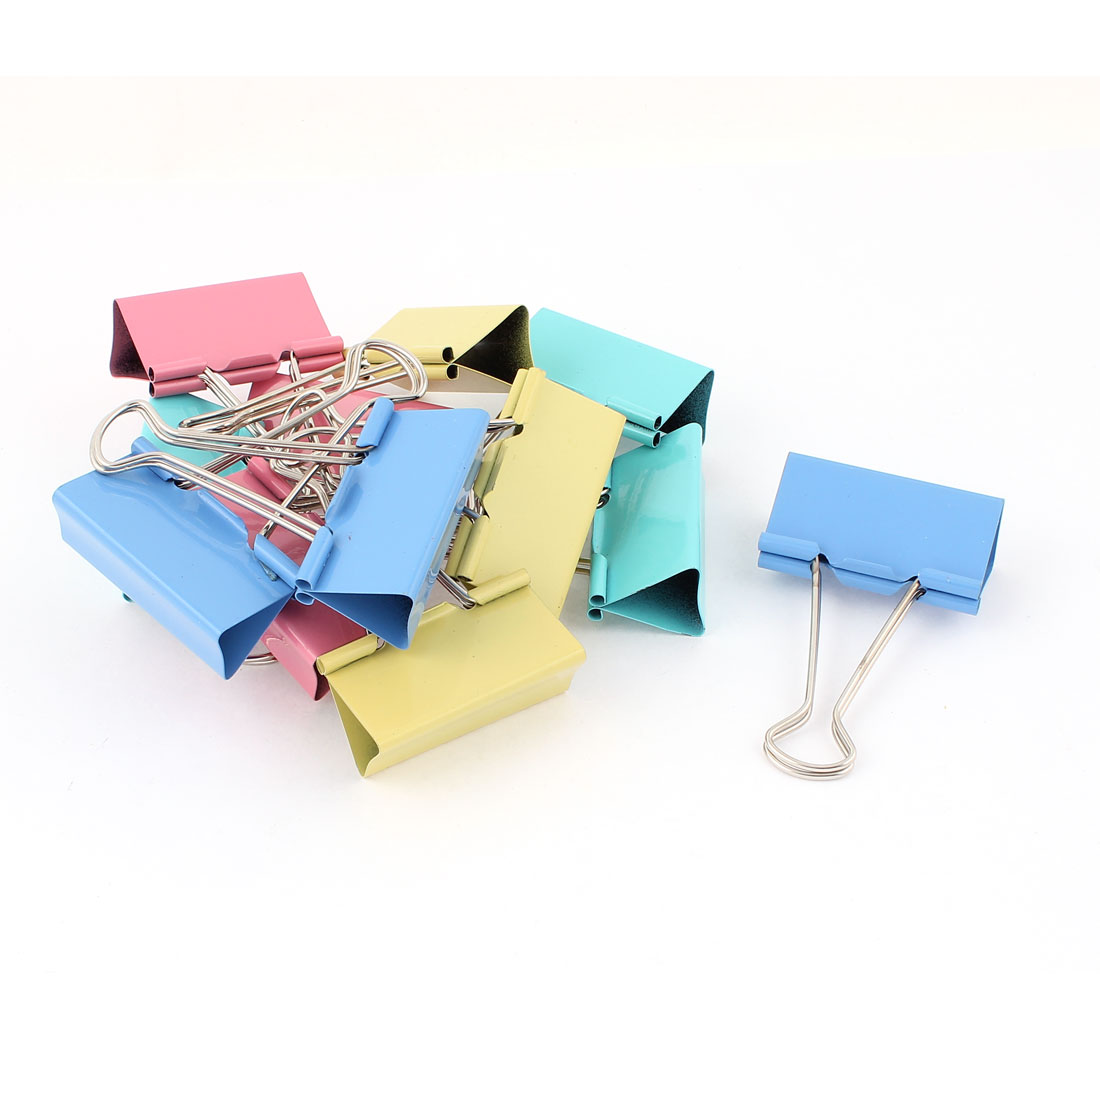 School Office Metal Bookbinding Clamp Binder Paper Clips Document Organize Stationery 51mm 12pcs